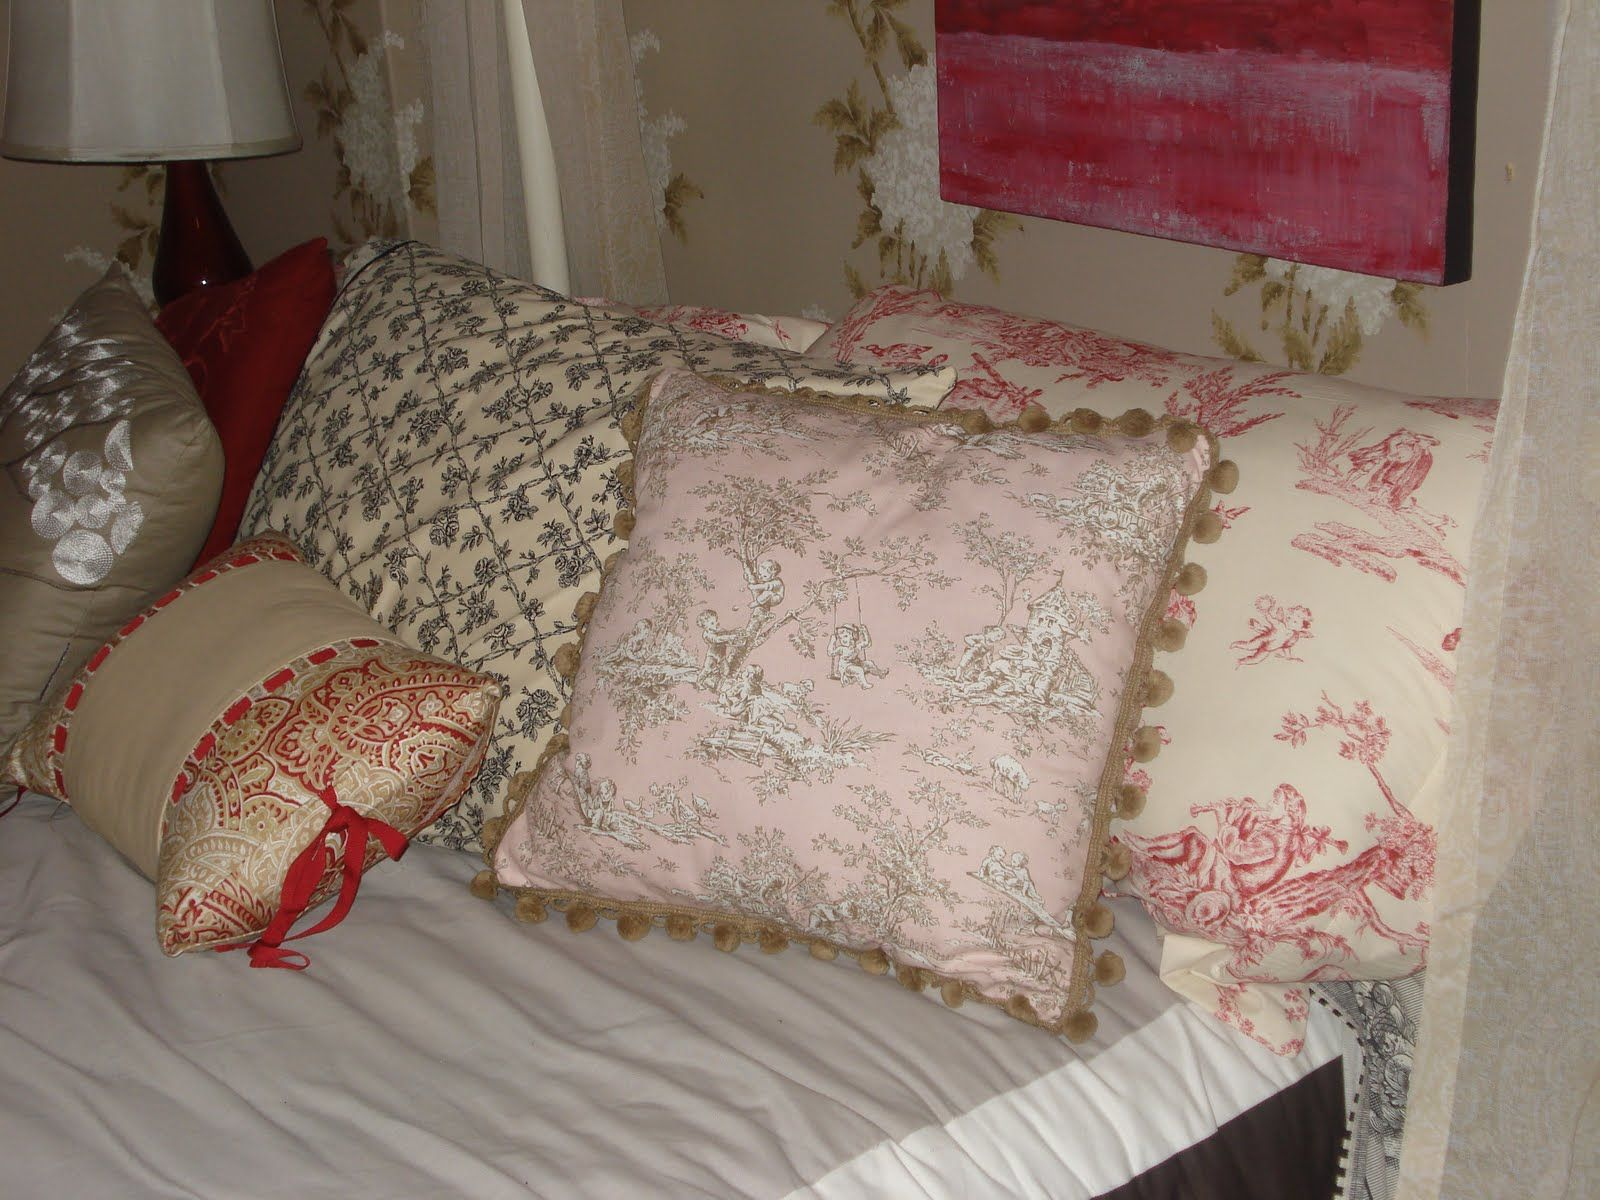 Marks And Spencer Hastings Bedroom Furniture Spencers Room From Pretty Little Liars For The Home Pinterest